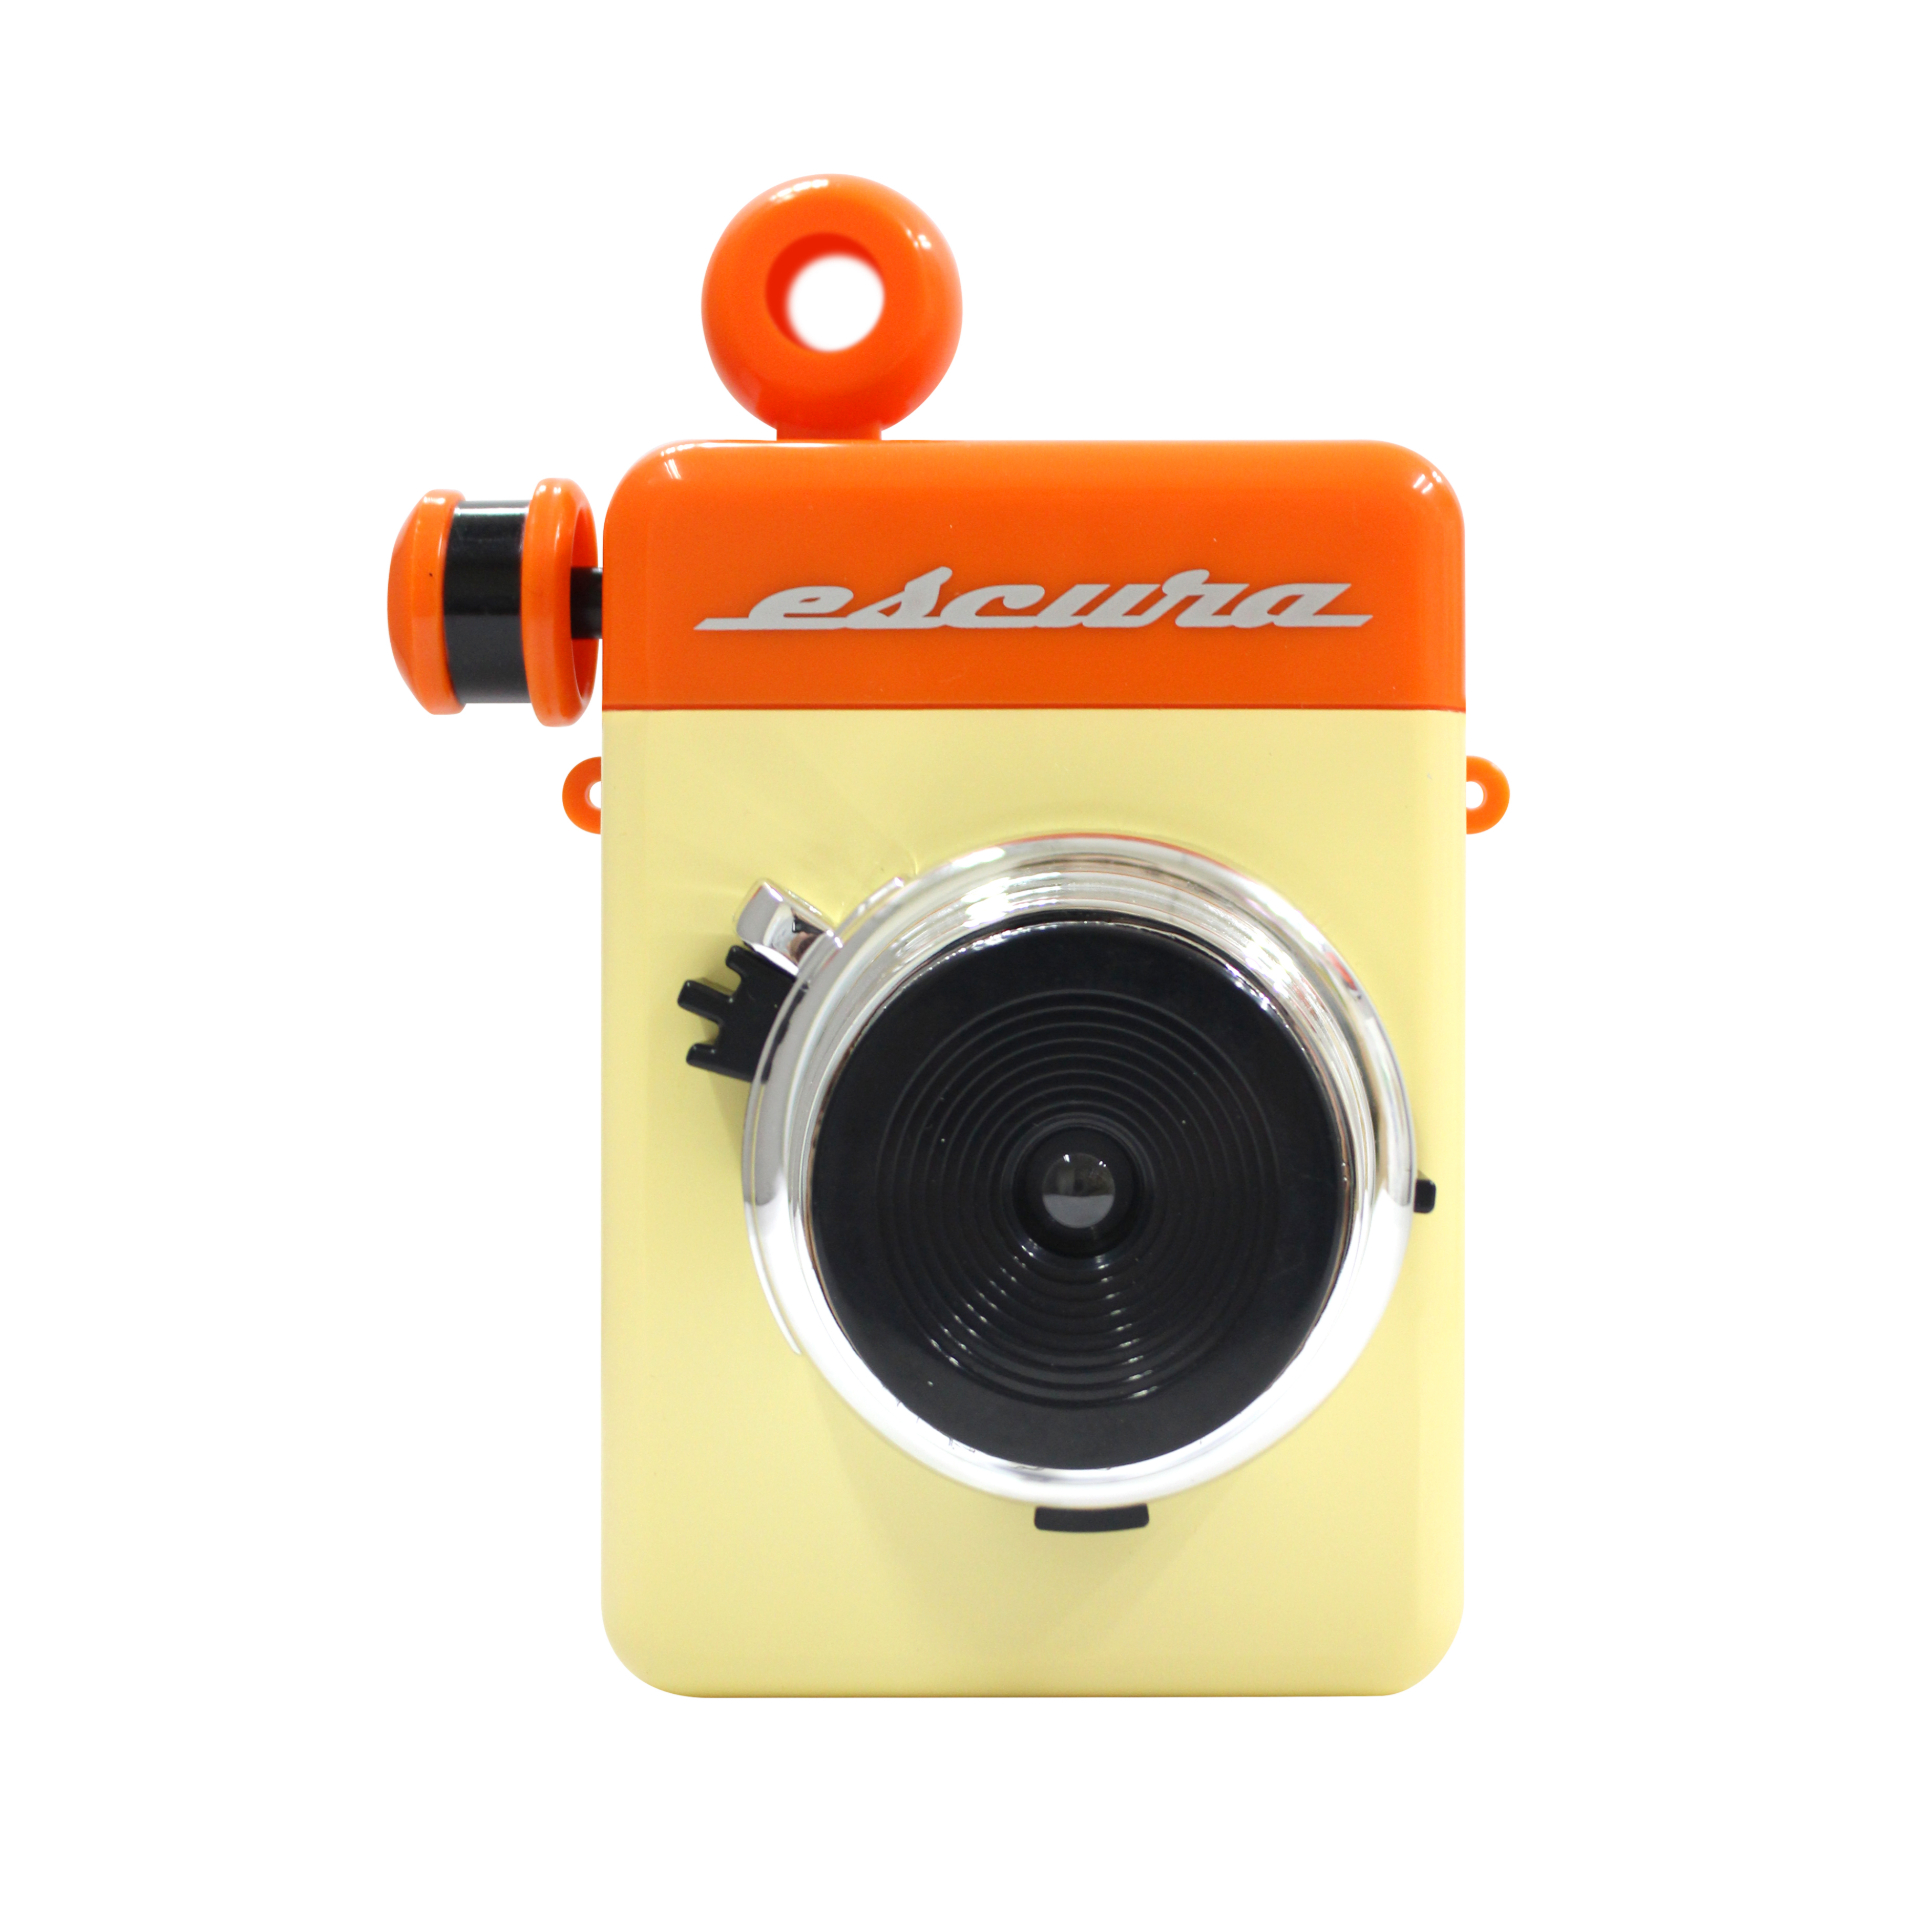 Image of Escura Instant 60s Hand-powered Instant Camera - Orange